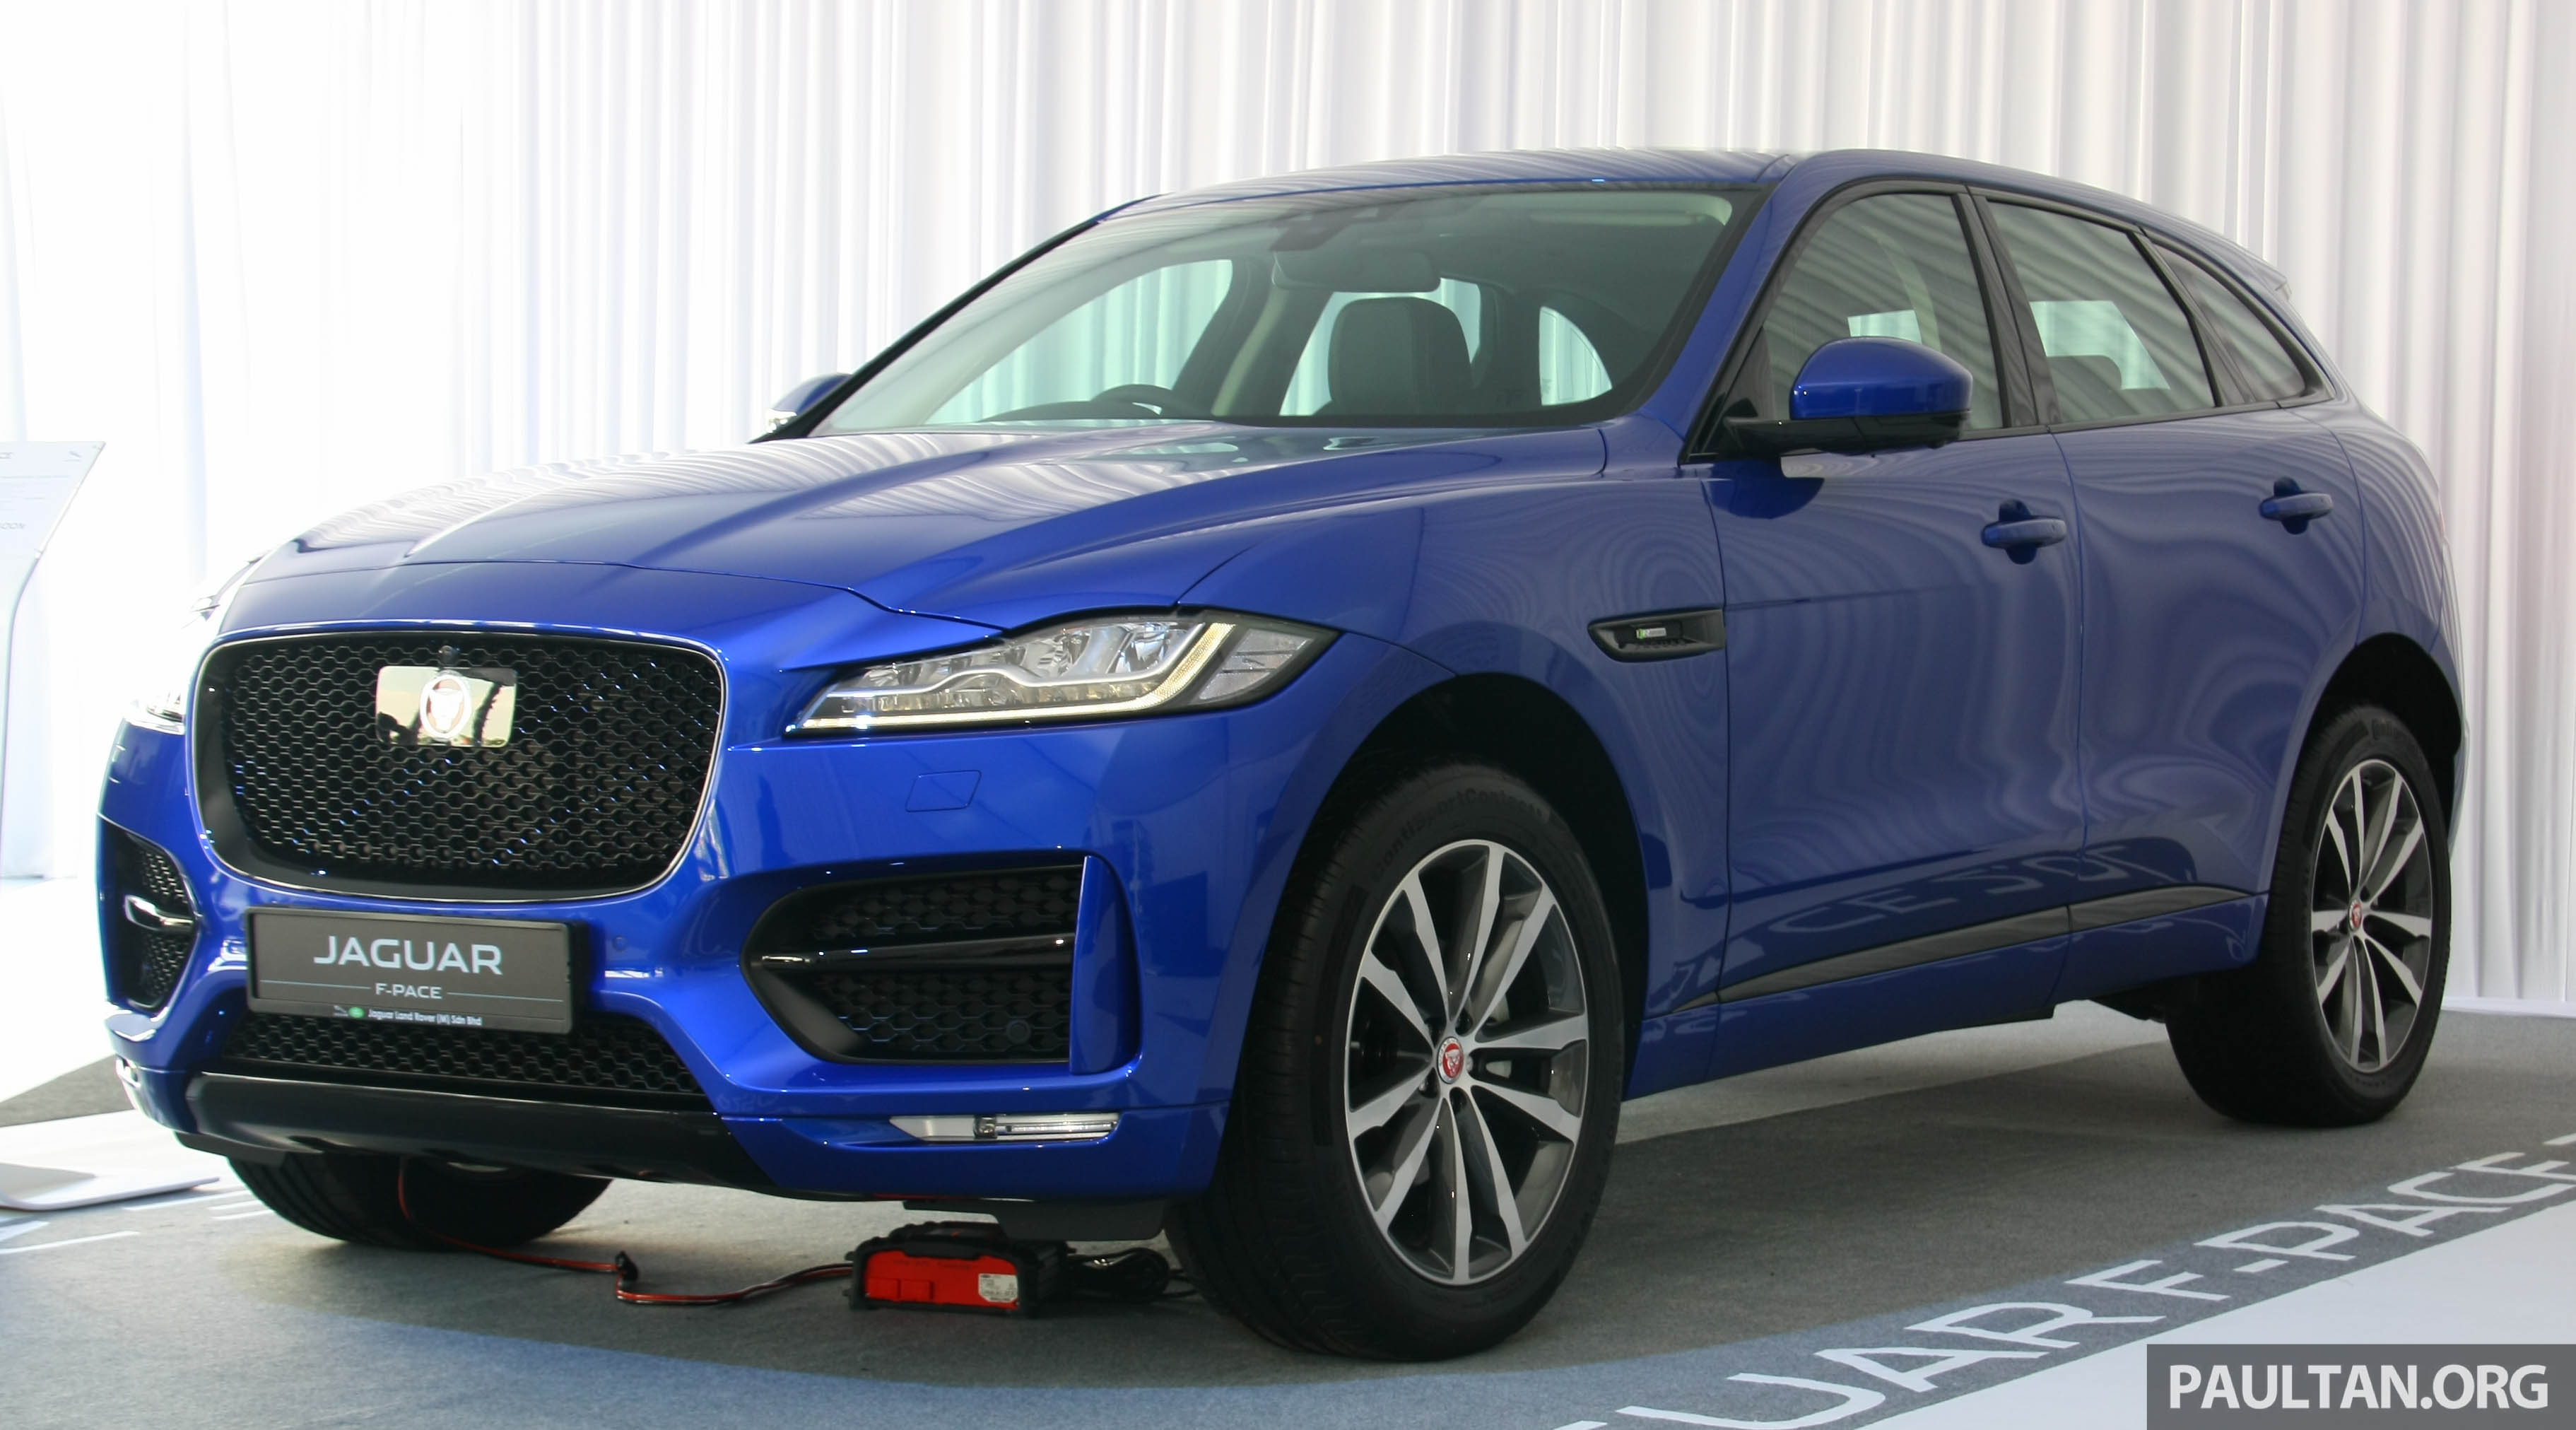 Jaguar F Pace 2 0l Ingenium Now Available In Malaysia 250 Ps 365 Nm Three Variants Priced From Rm426k Paultan Org